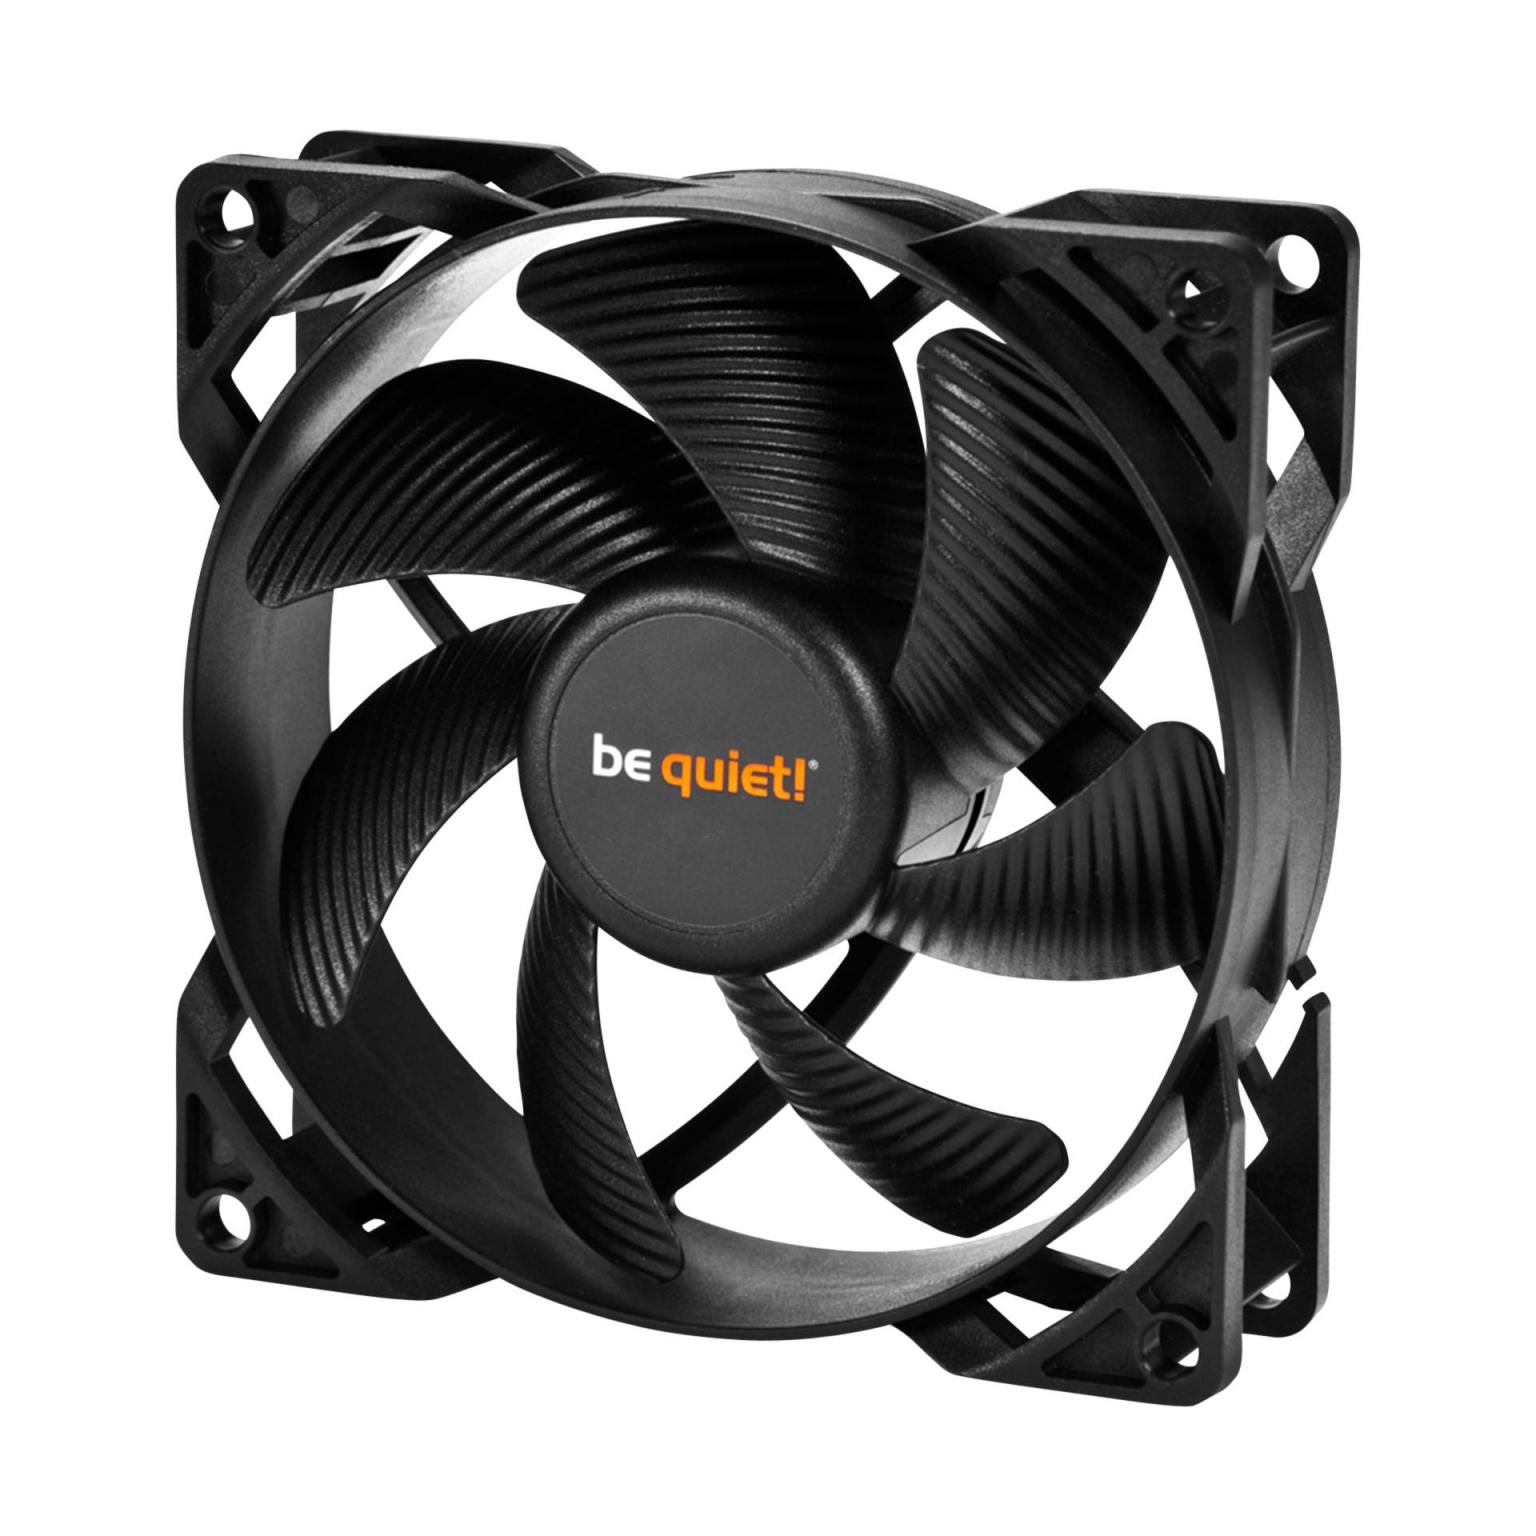 Image of be quiet Casefan Pure Wings 2 92mm , 1900rpm